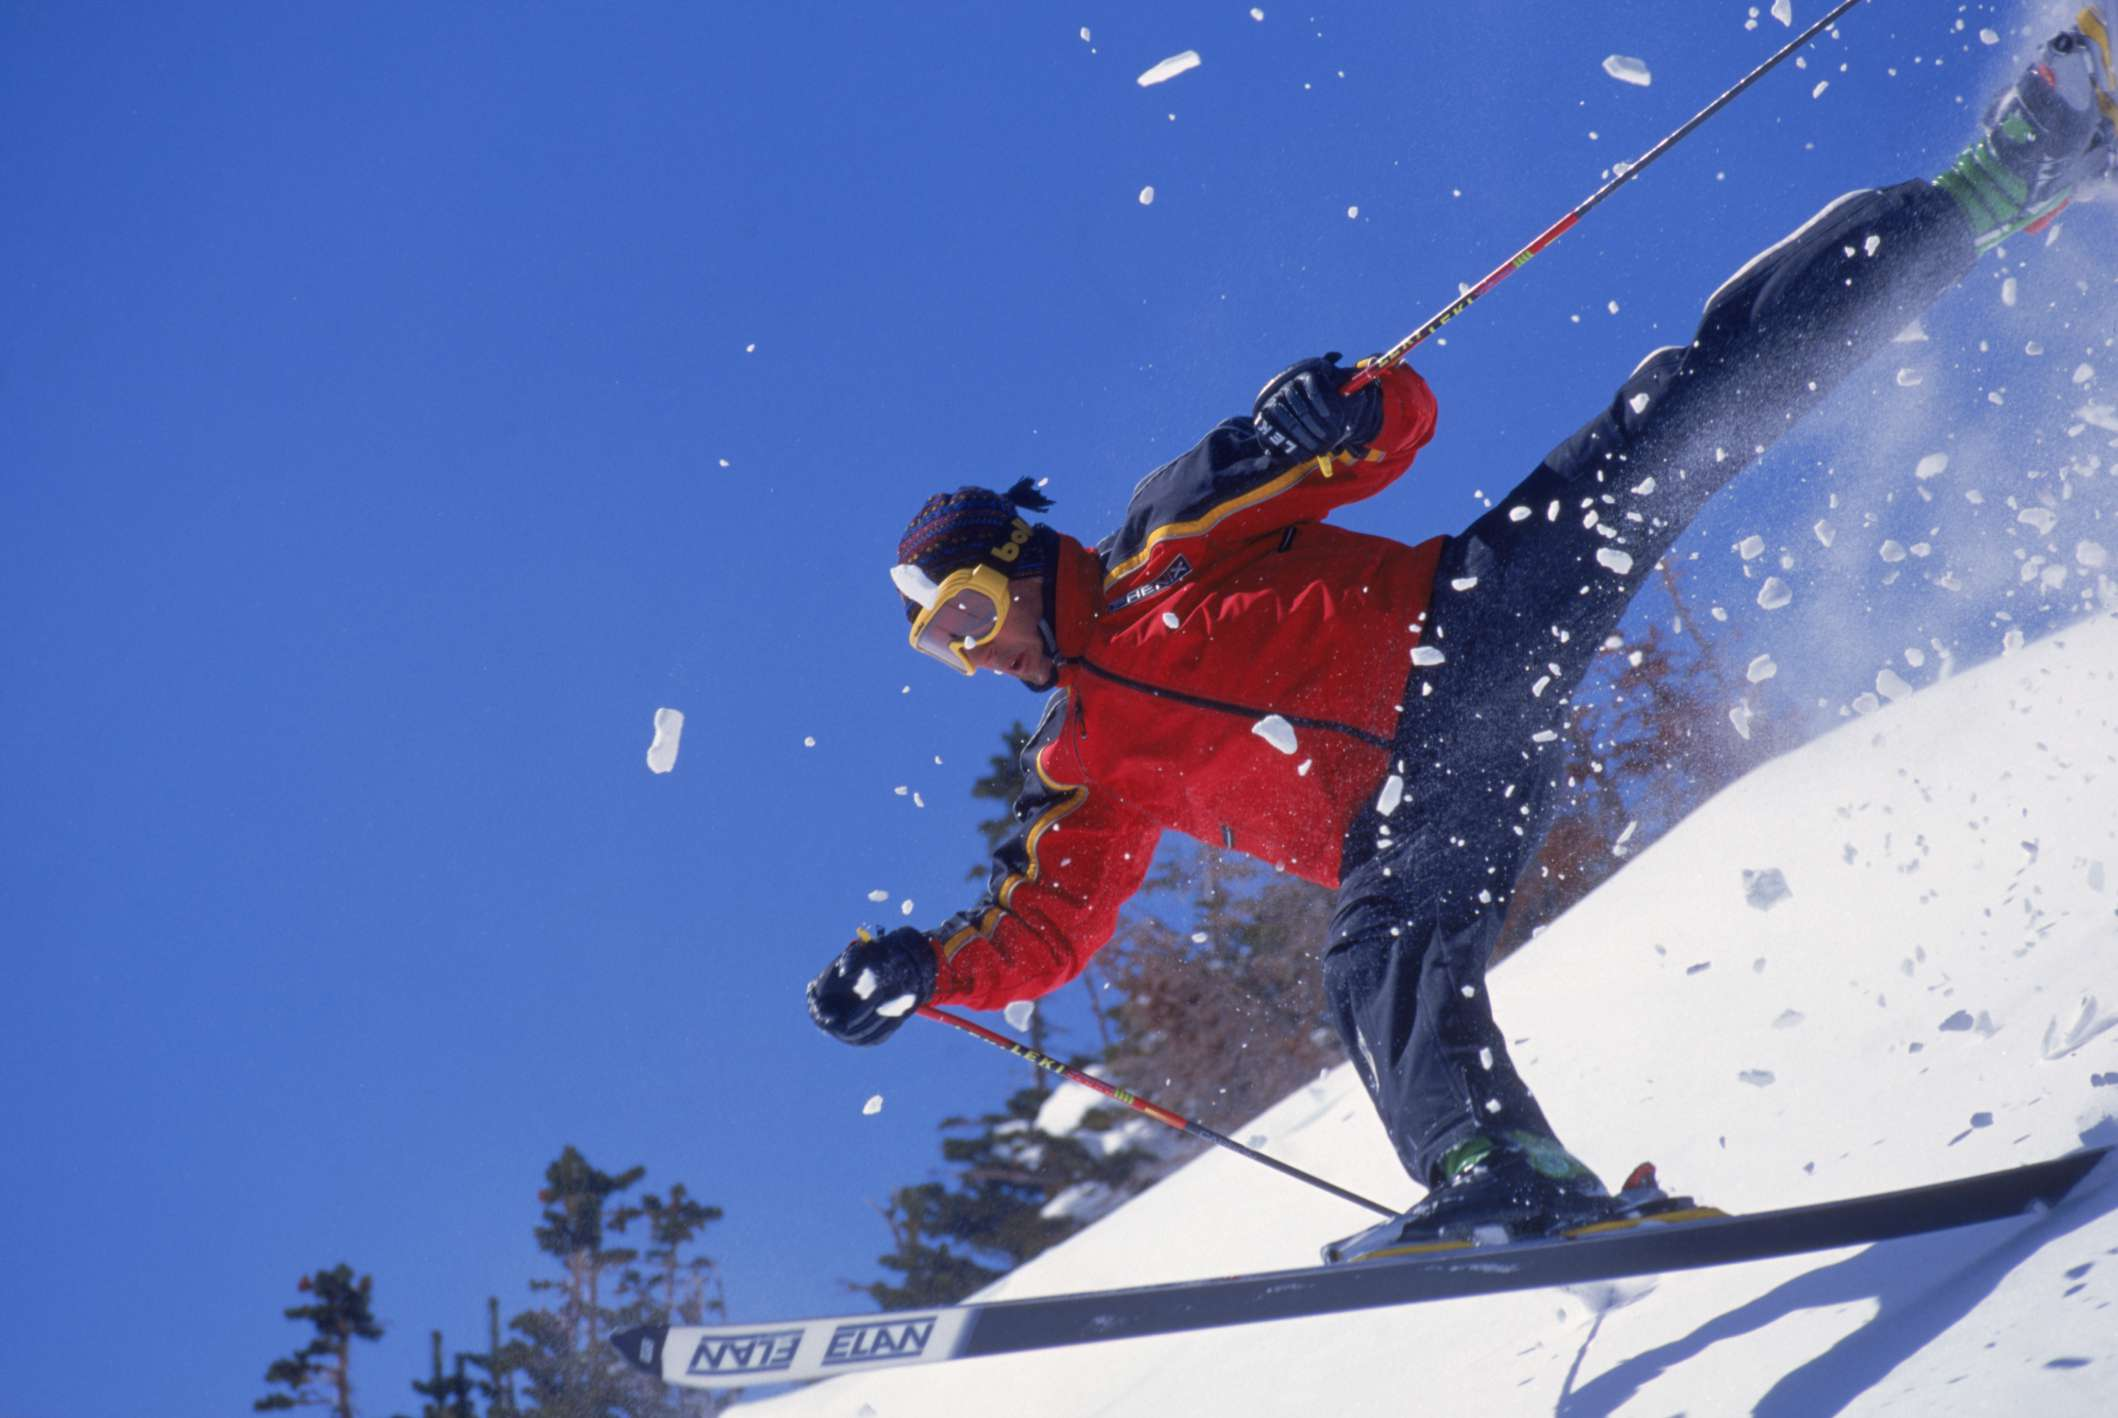 A skier falling on the side of a mountain